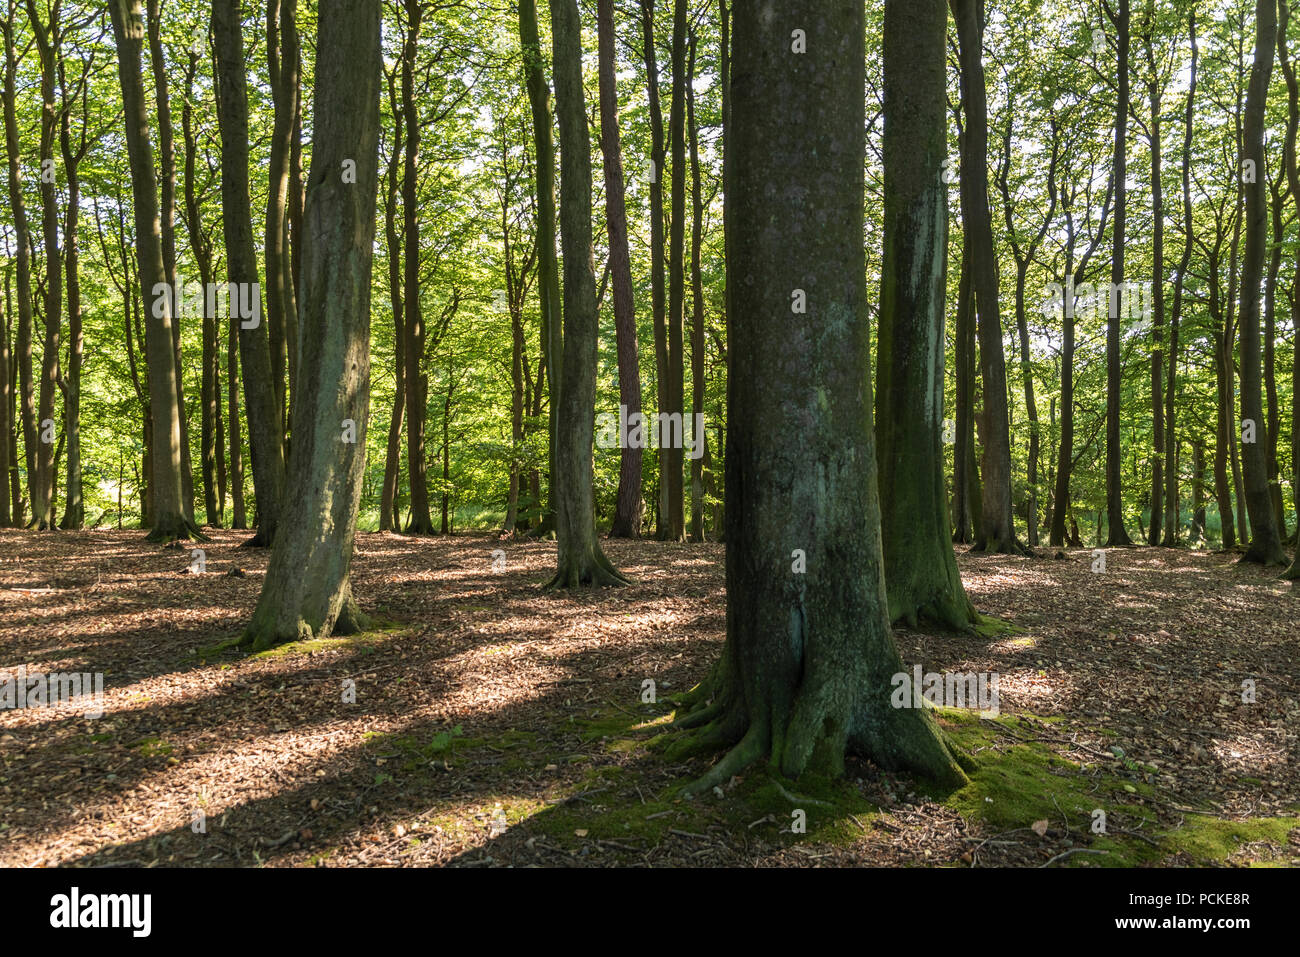 Primeval beech forest - Stock Image